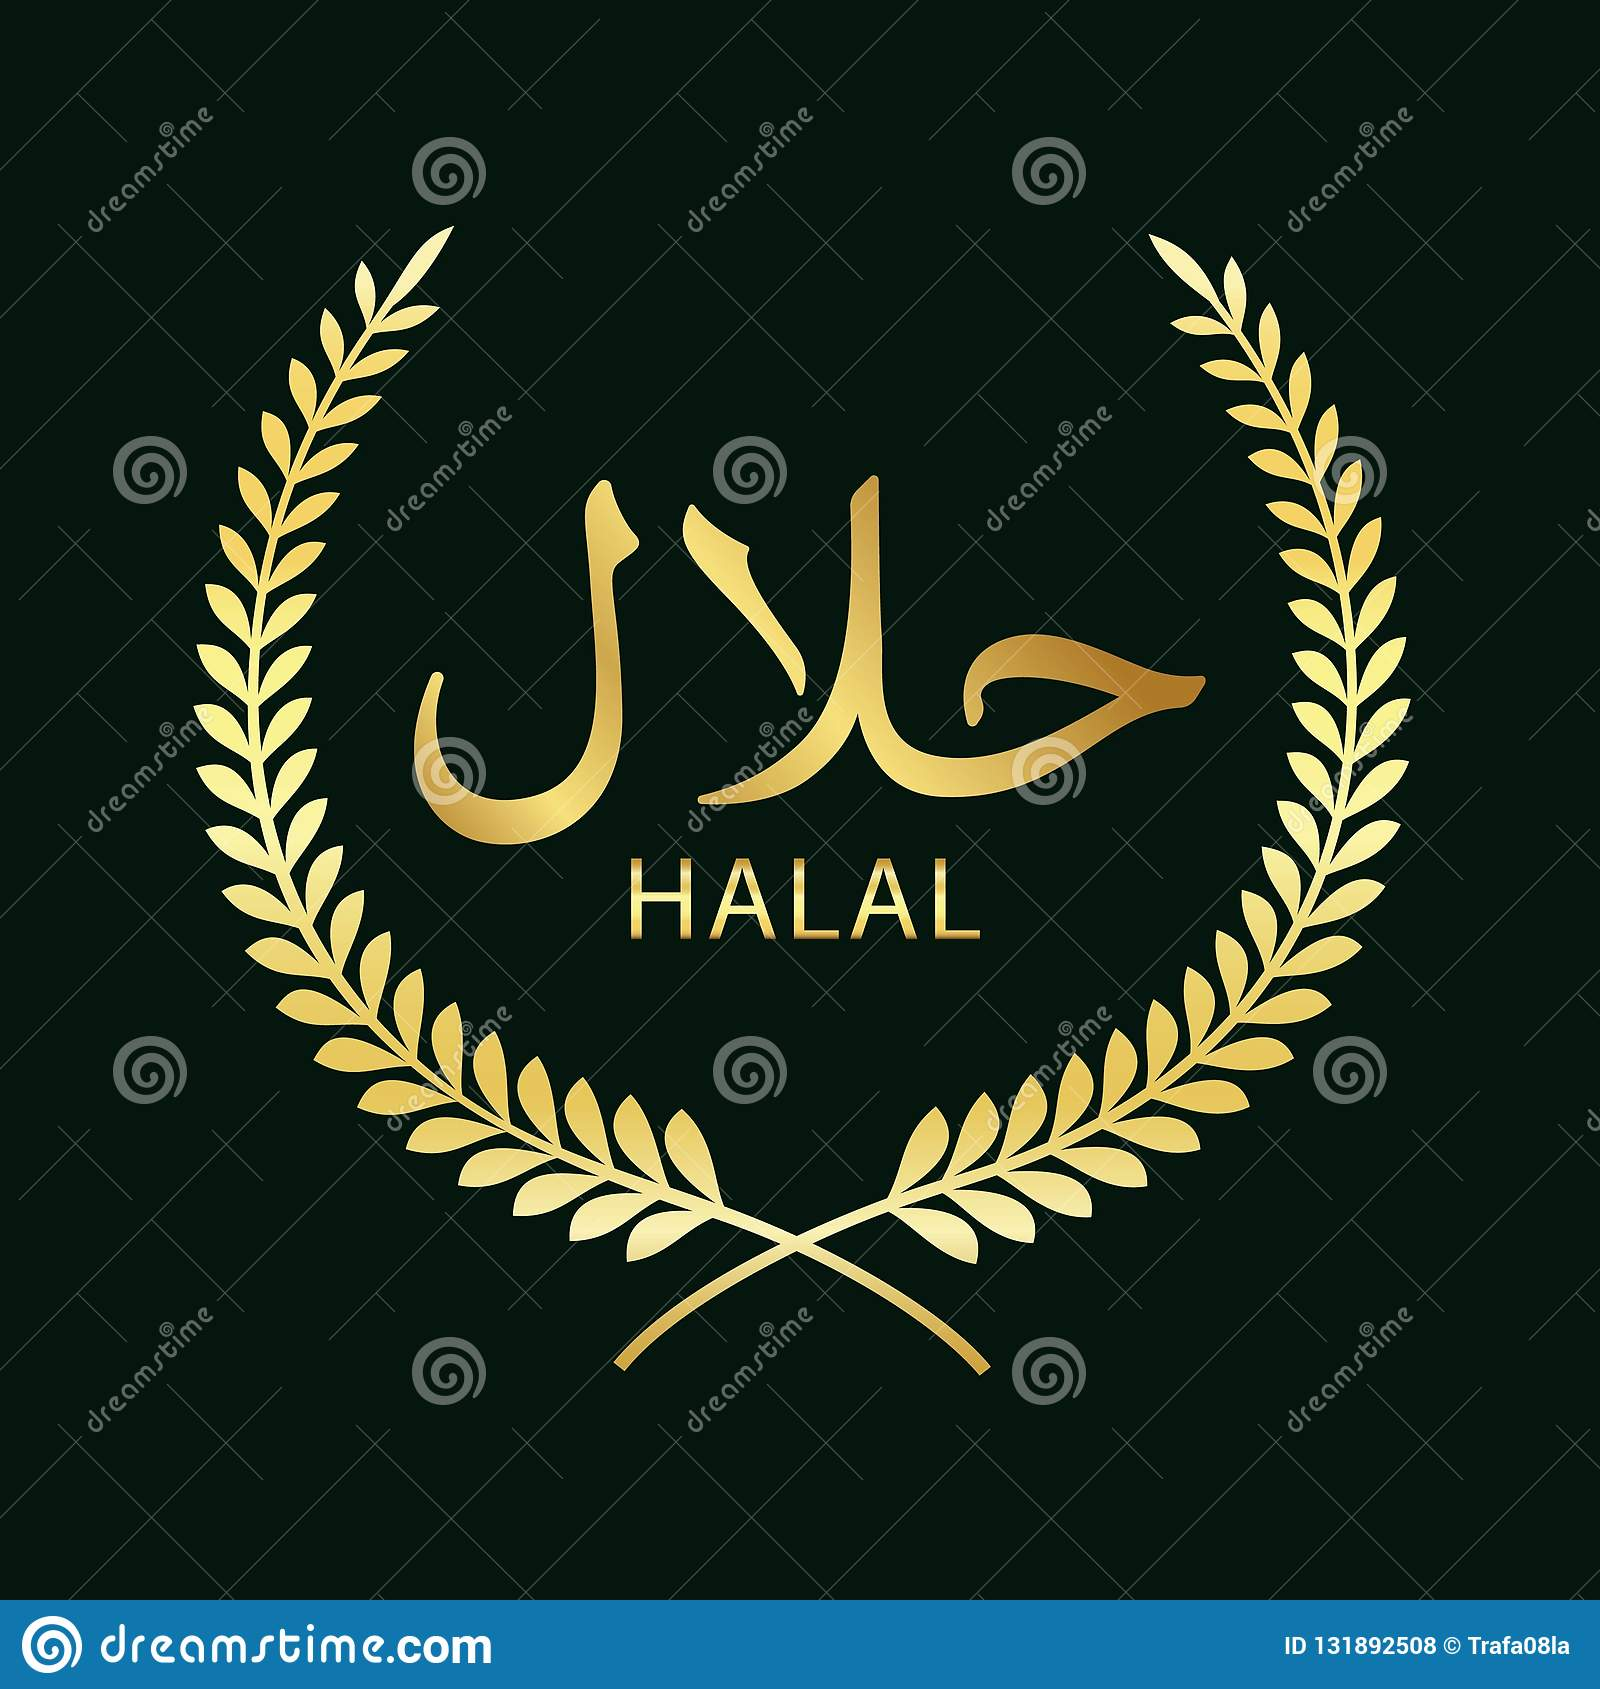 Halal Sign Design  Halal Certificate Tag  Stock Illustration